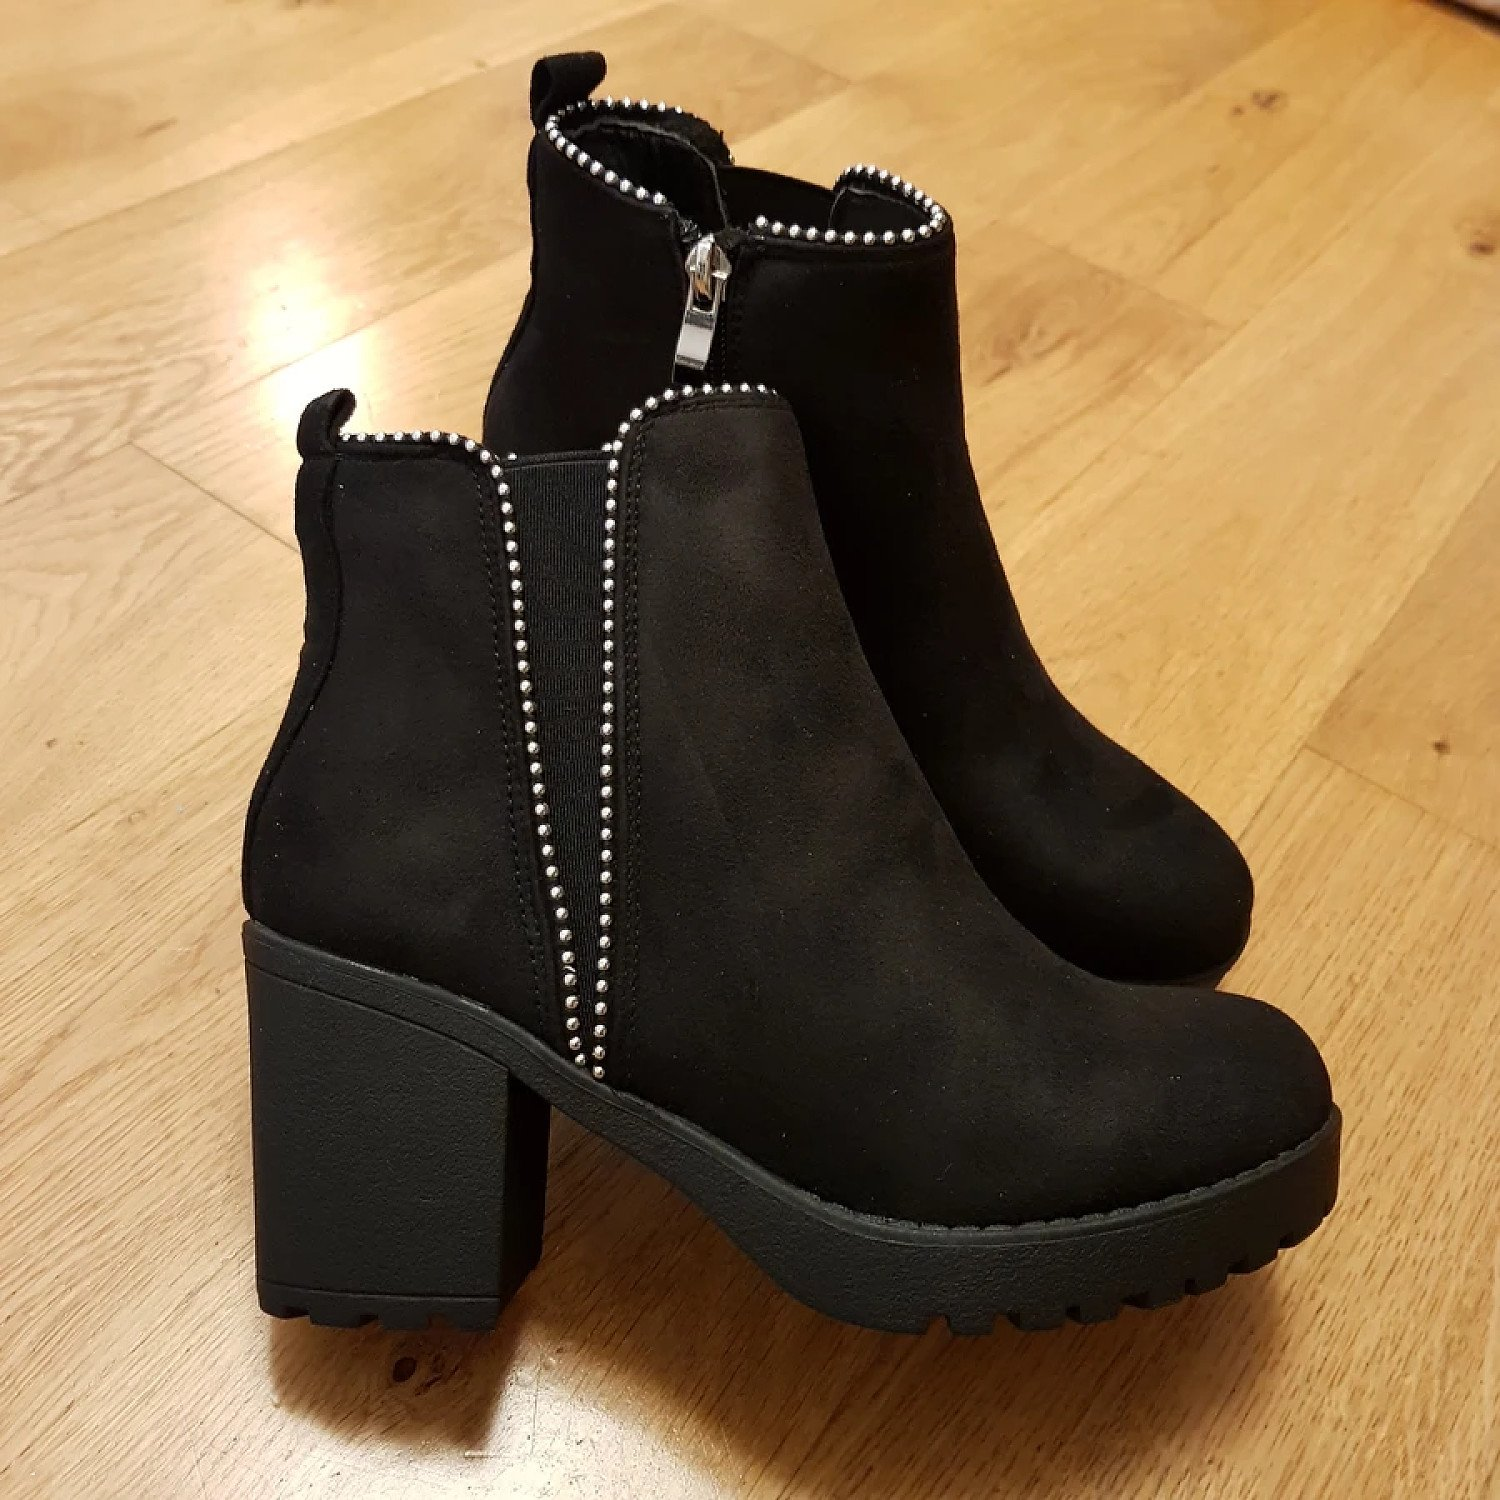 Chloe Black Suede Ankle Boots £15